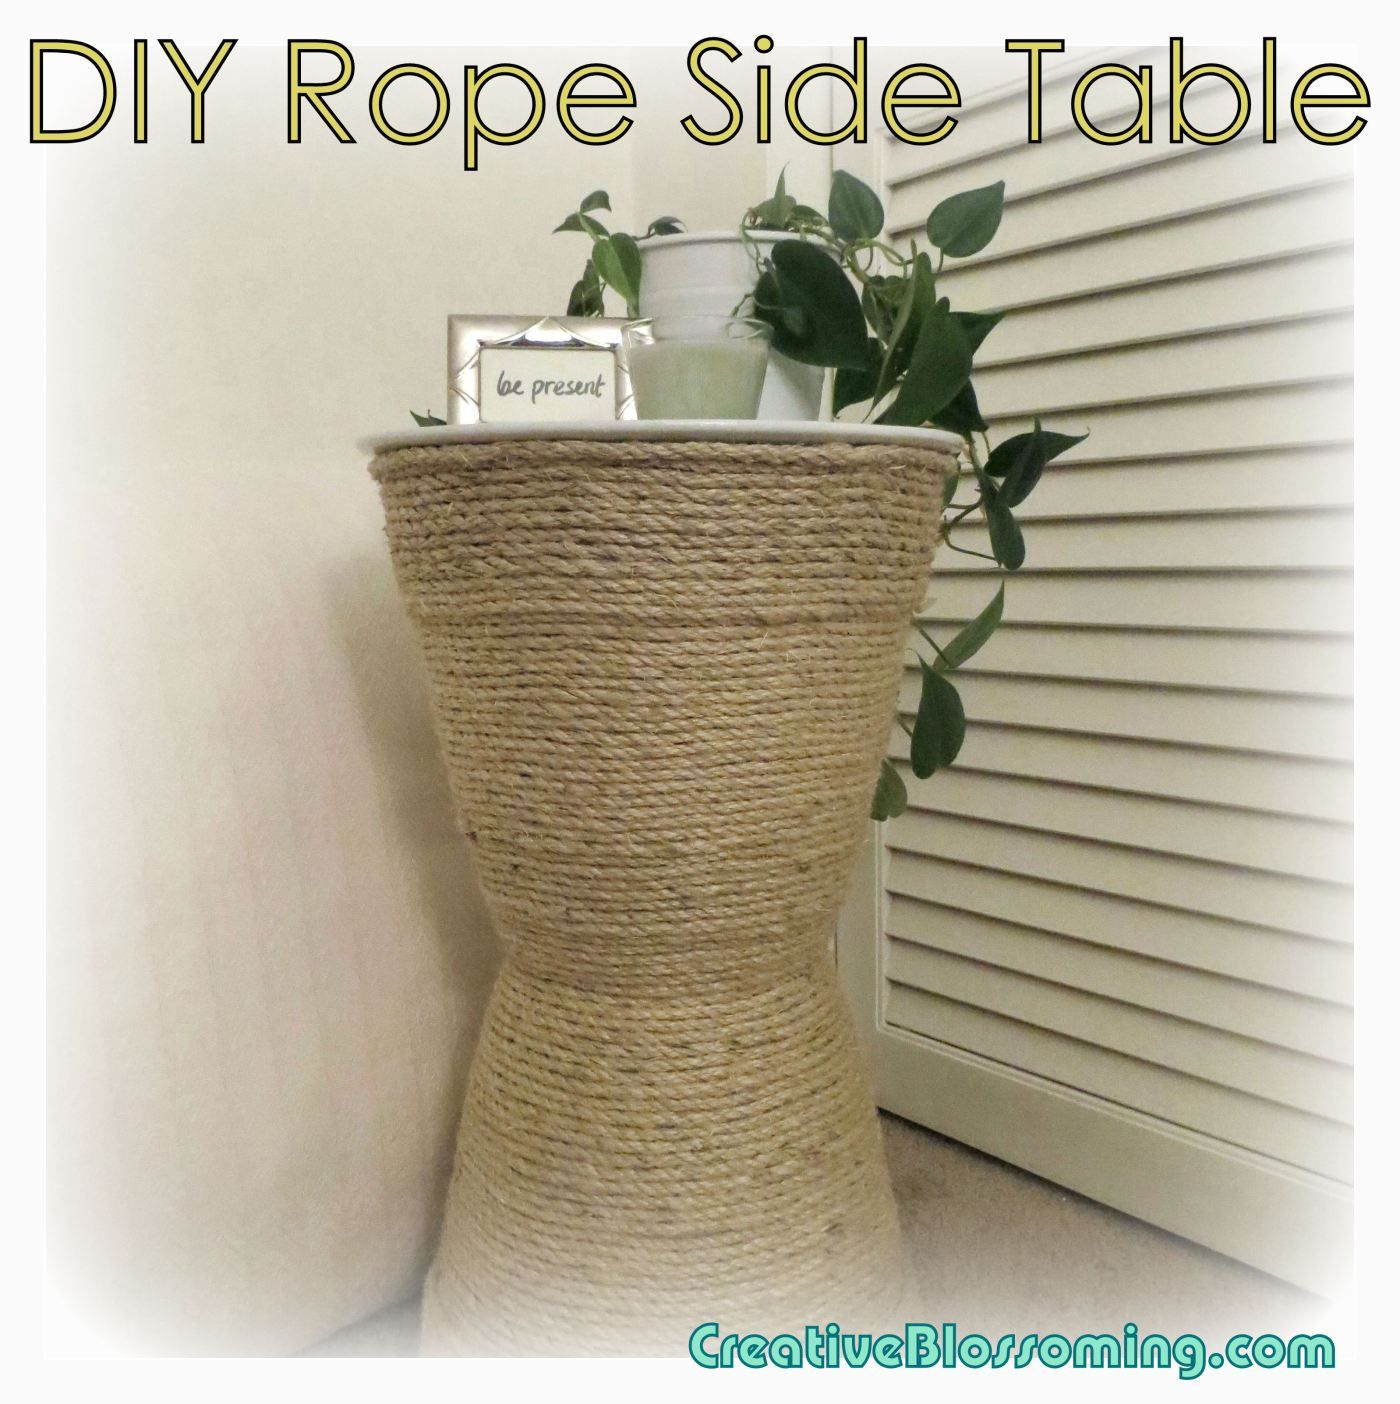 Diy Sisal Rope Side Table Planters Pots White Natural